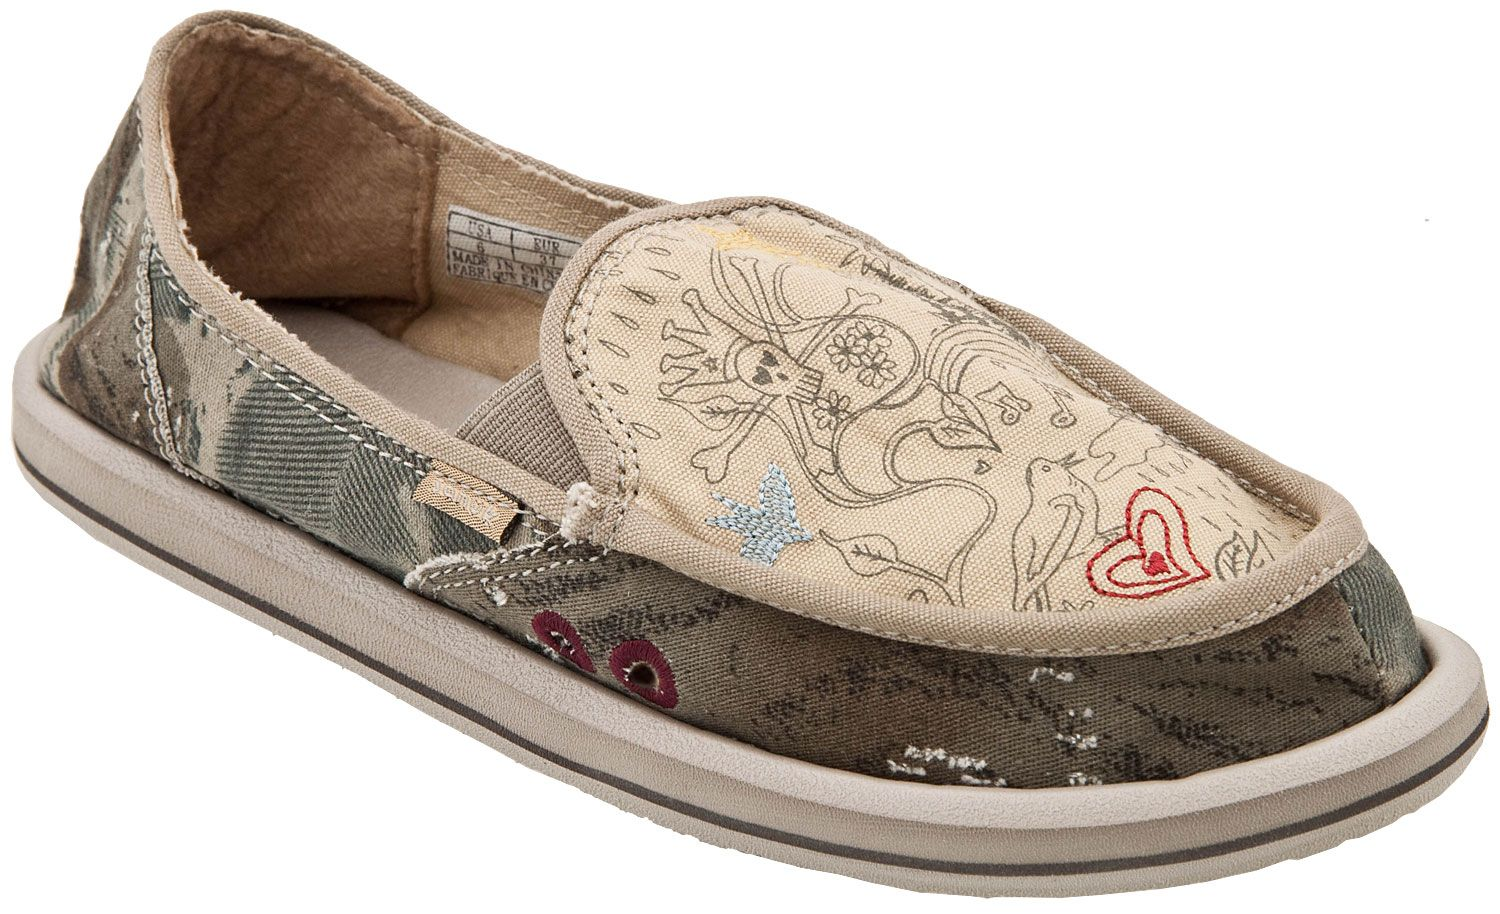 Explore Sanuk Shoes, Permanent Marker and more!